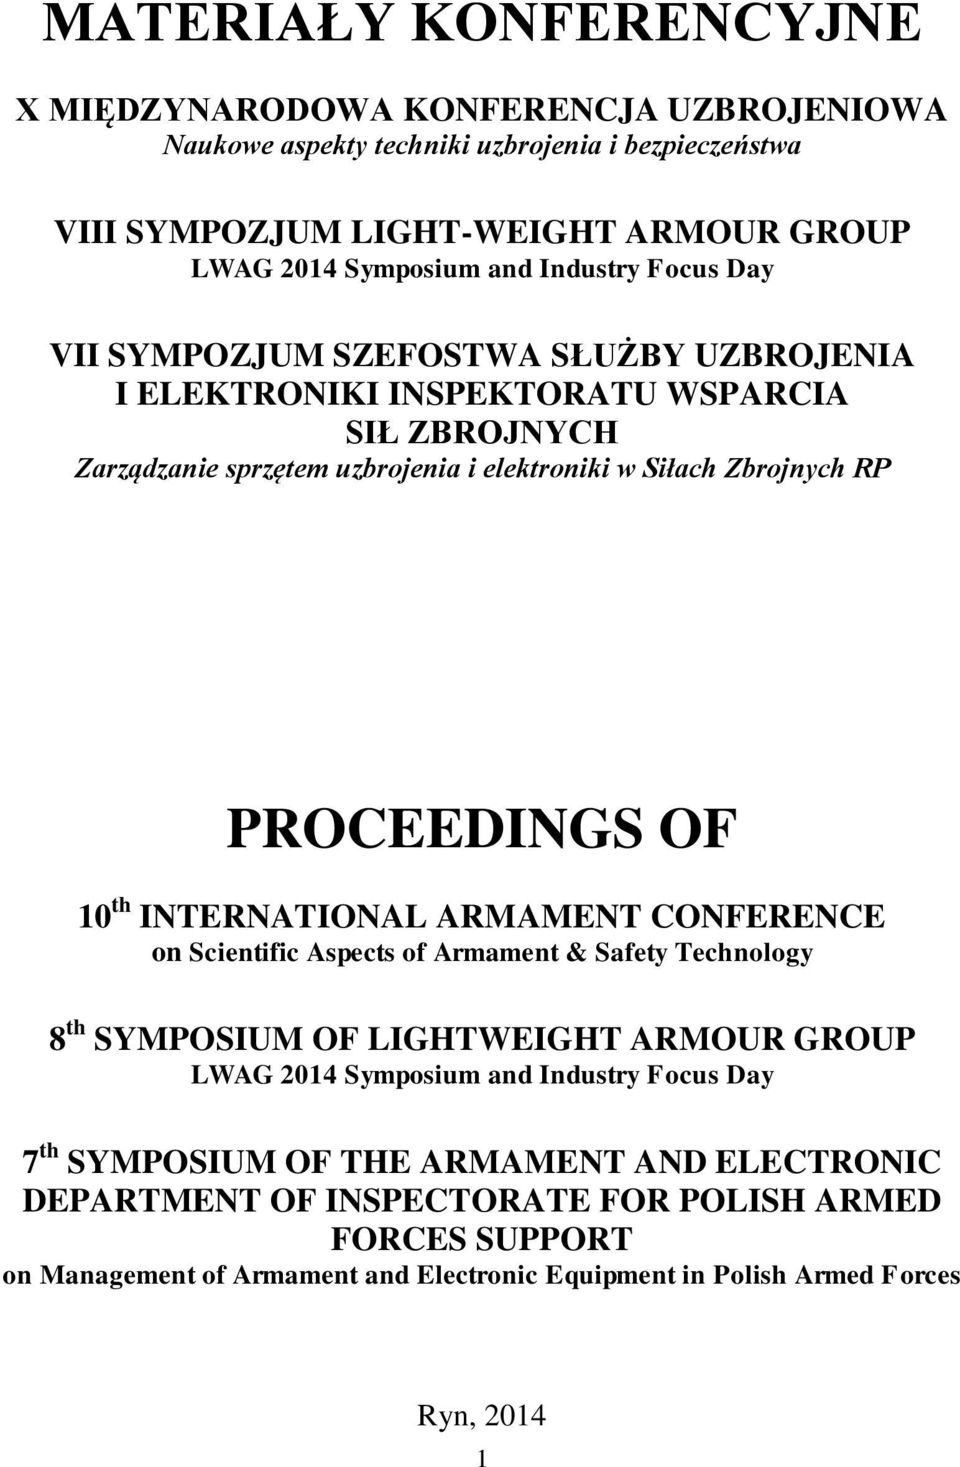 PROCEEDINGS OF 10 th INTERNATIONAL ARMAMENT CONFERENCE on Scientific Aspects of Armament & Safety Technology 8 th SYMPOSIUM OF LIGHTWEIGHT ARMOUR GROUP LWAG 2014 Symposium and Industry